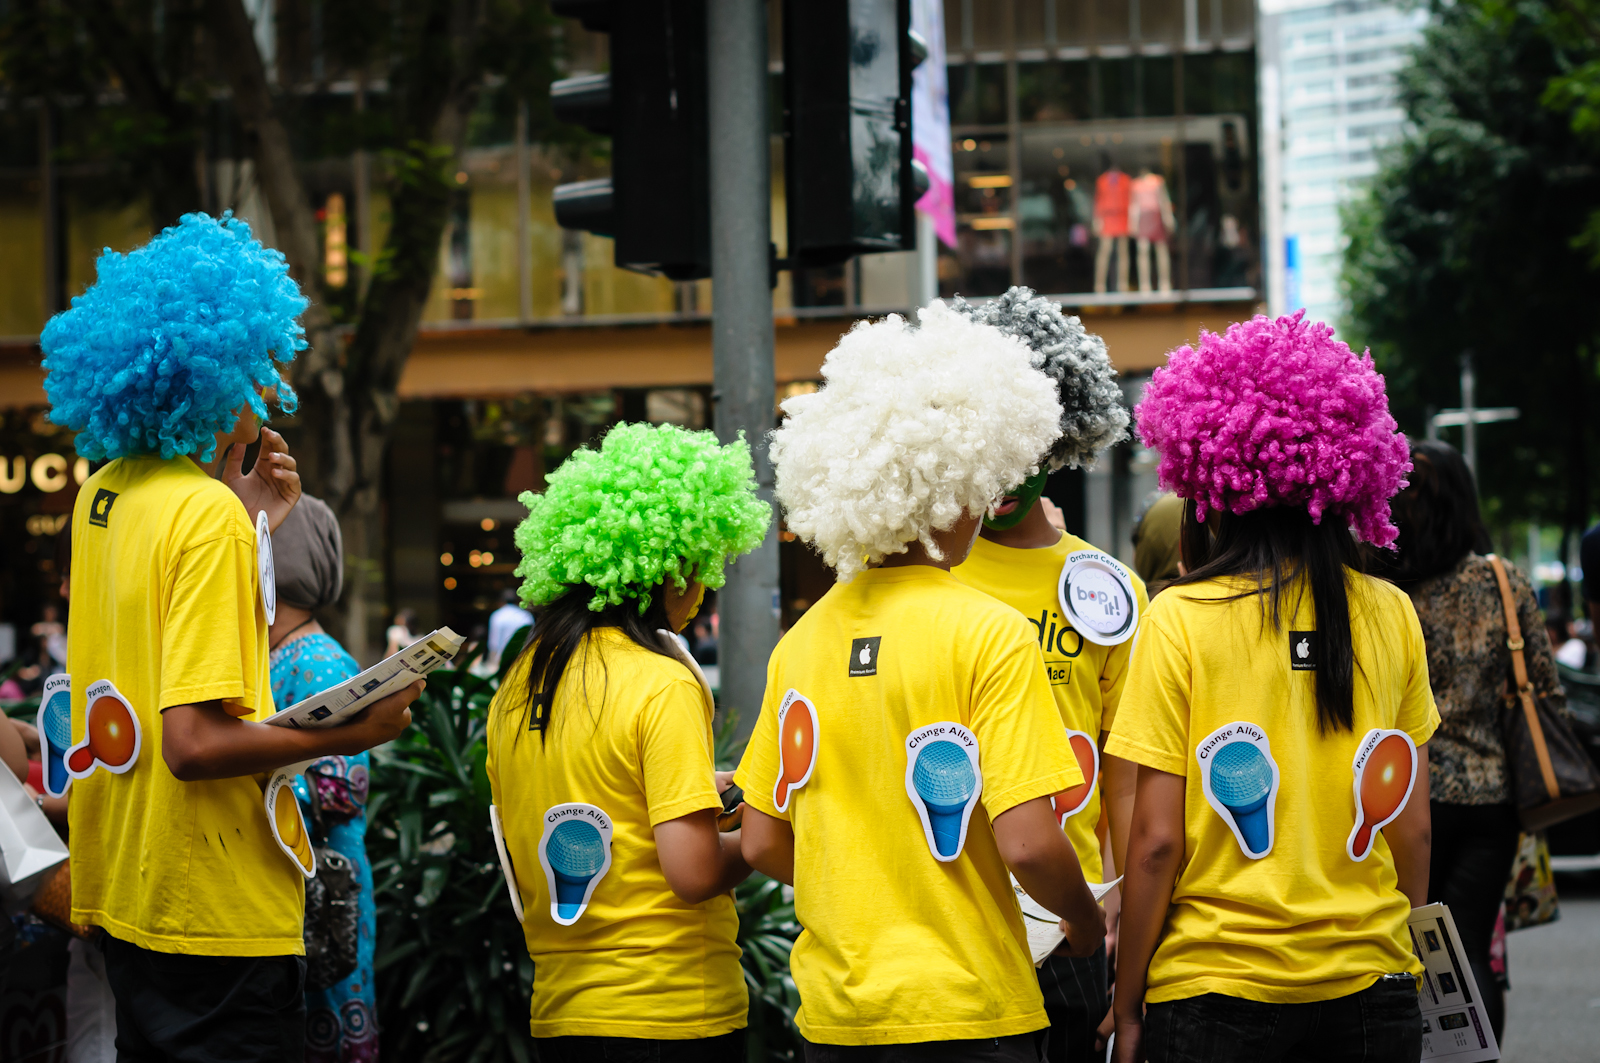 Street photography - iStudio staff in colourful afro wigs